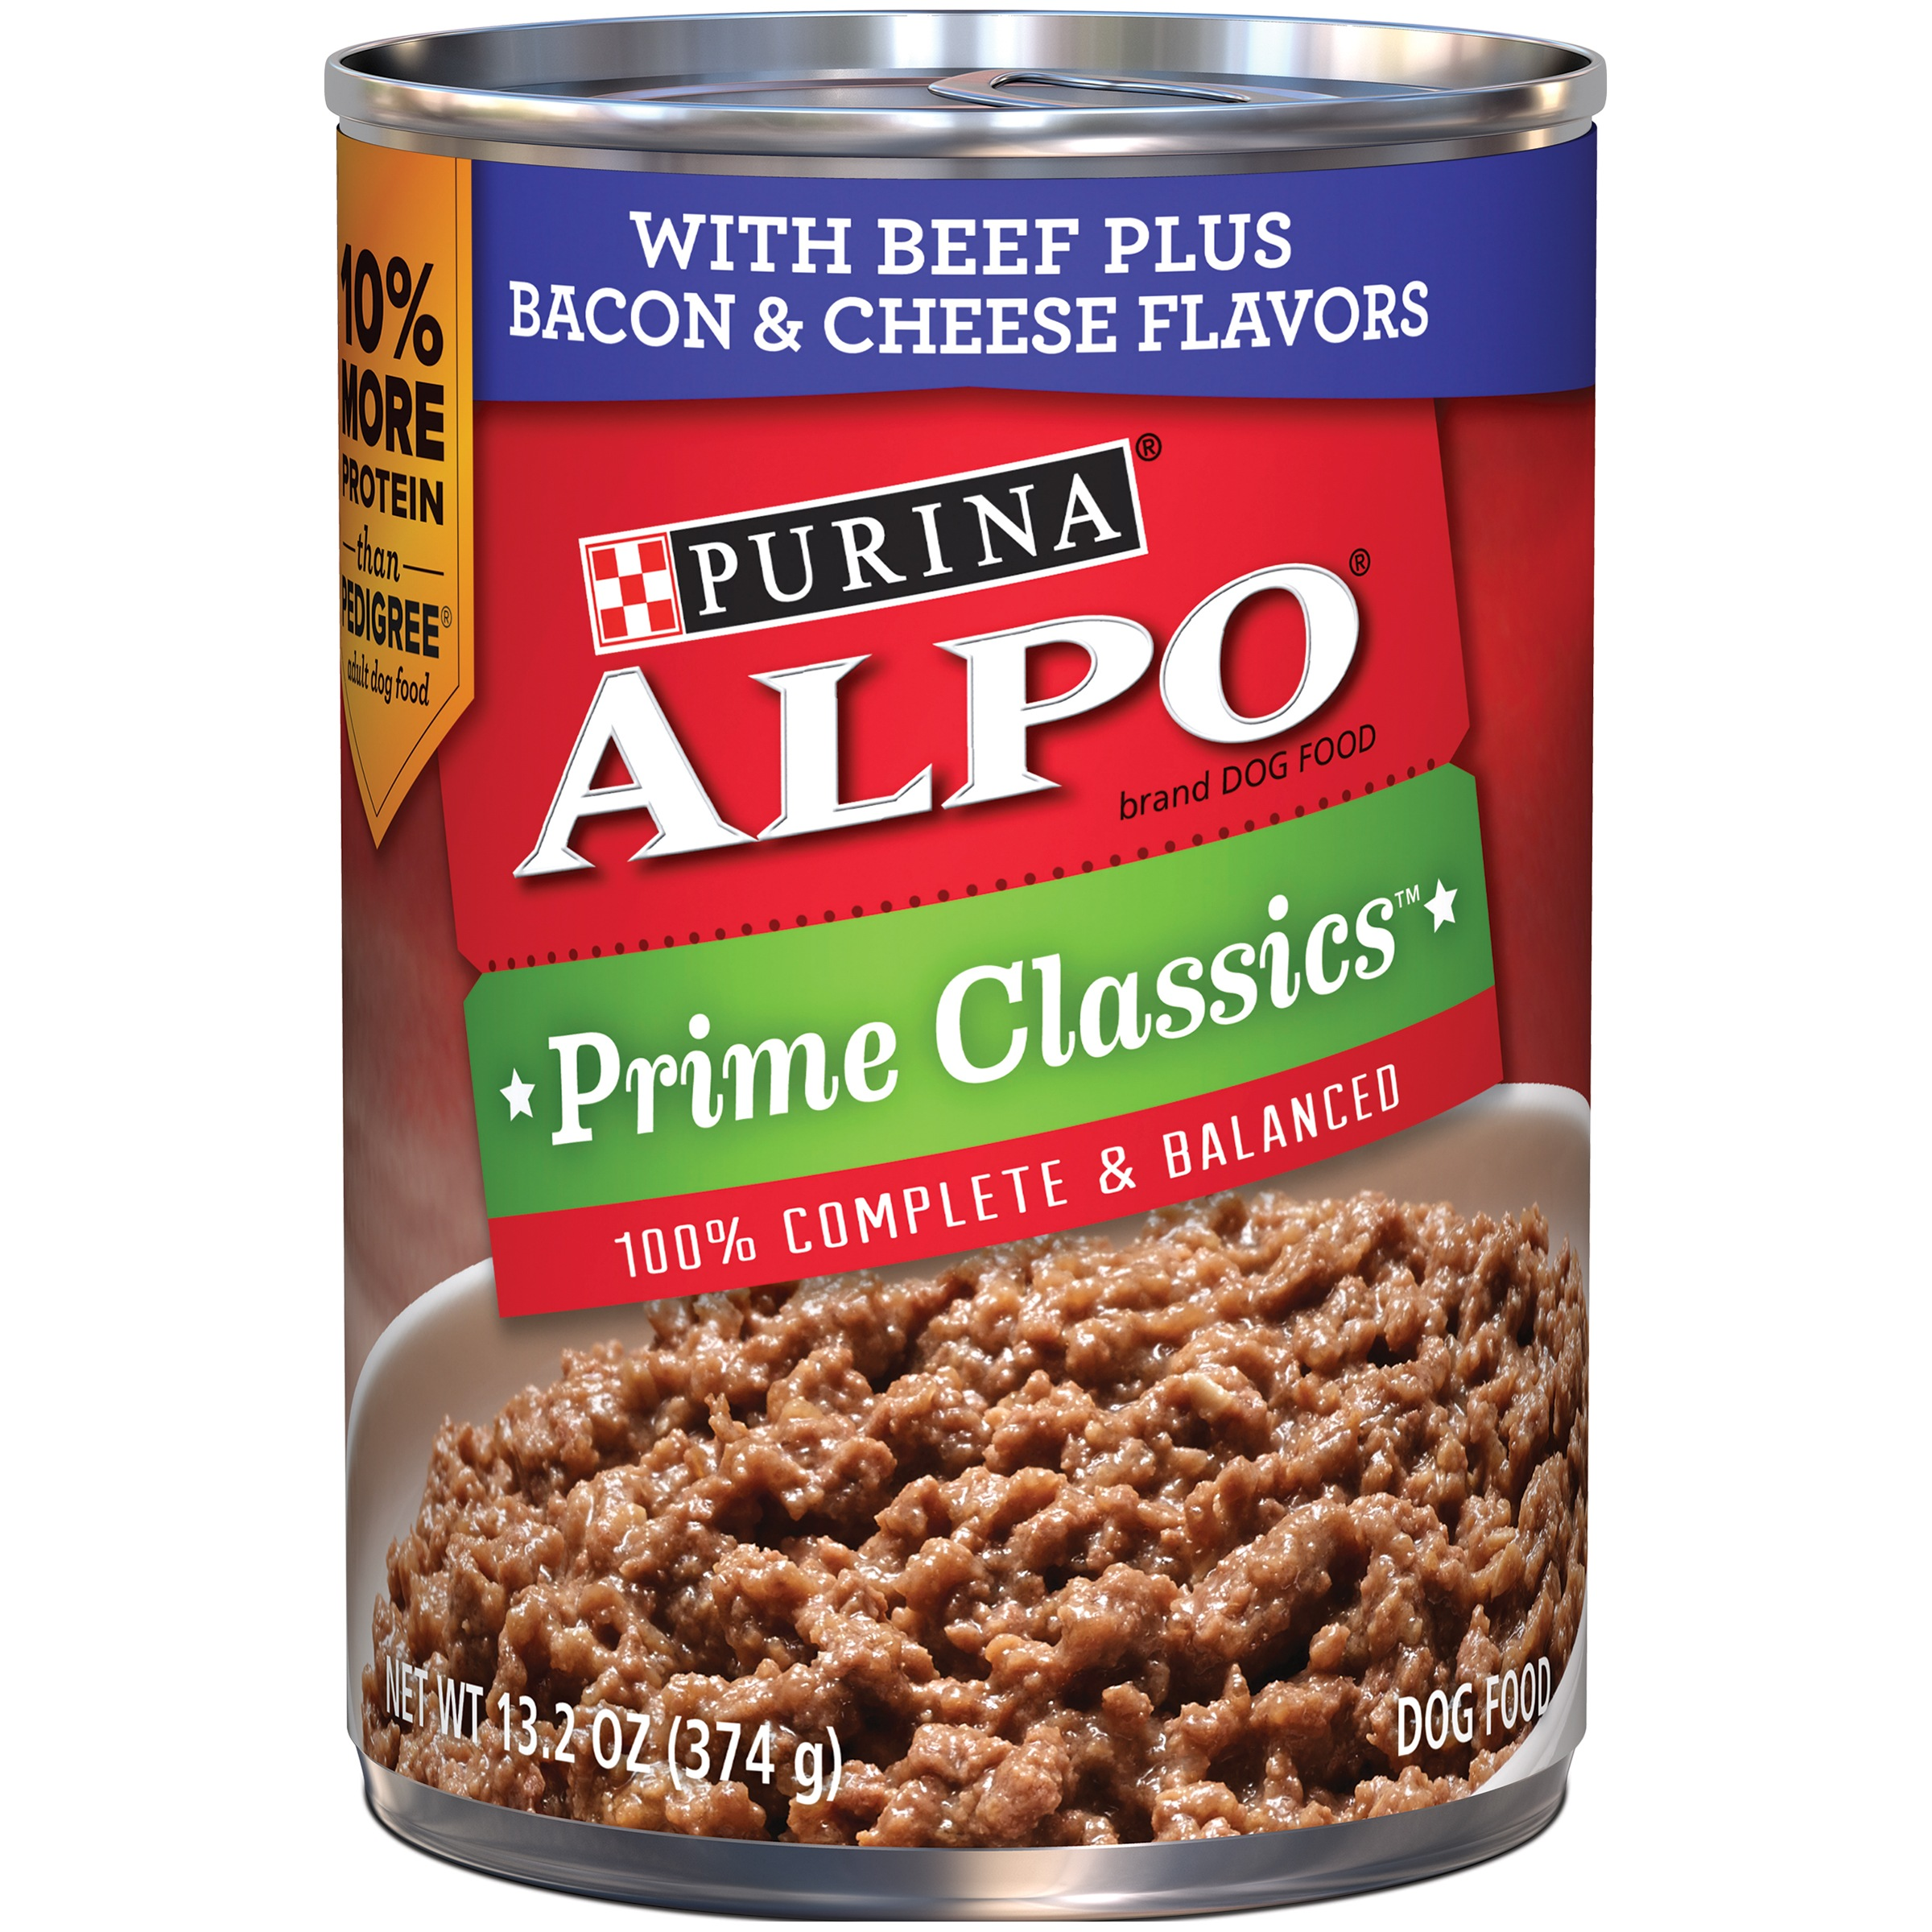 Purina ALPO Prime Classics with Beef Plus Bacon & Cheese Flavors Wet Dog Food, 13.2 Oz.